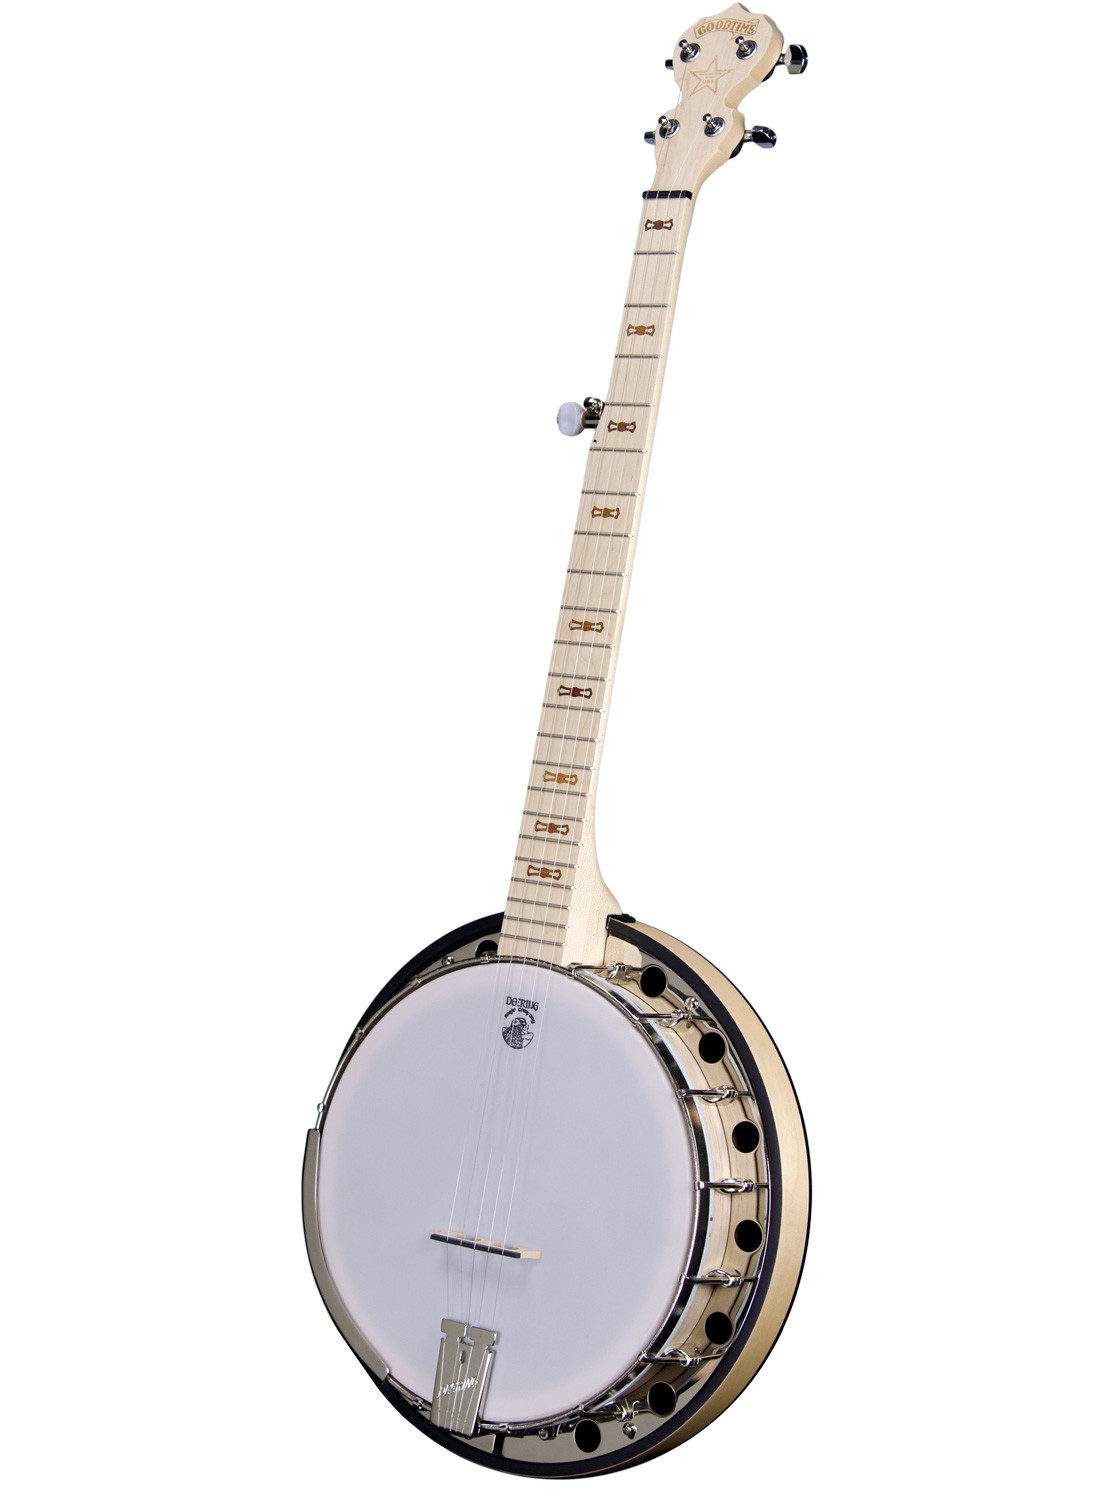 Deering Goodtime Two™ Banjo